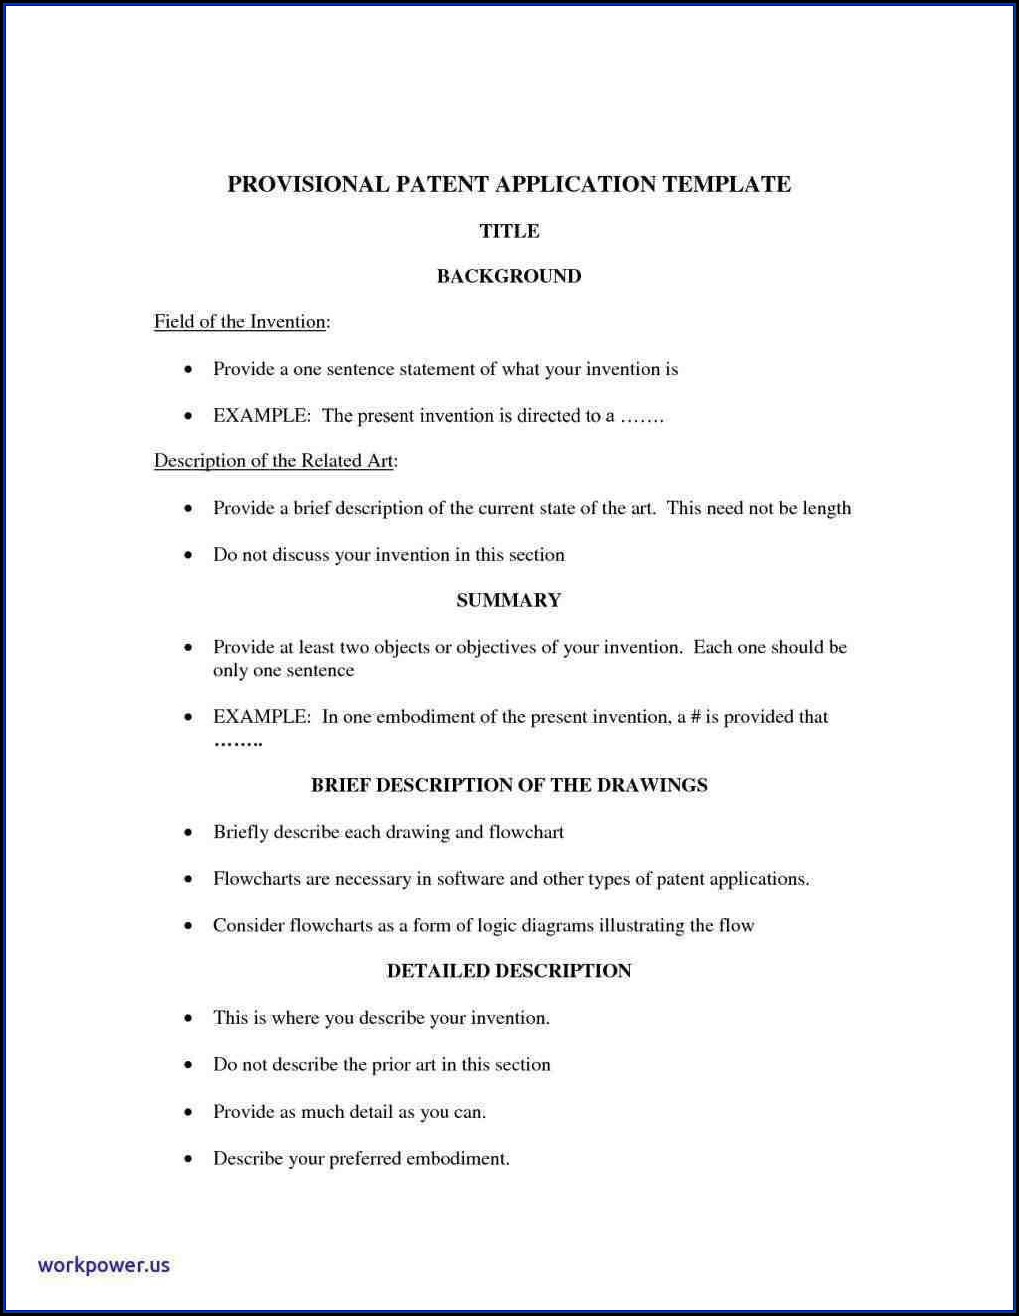 Provisional Patent Application Template India